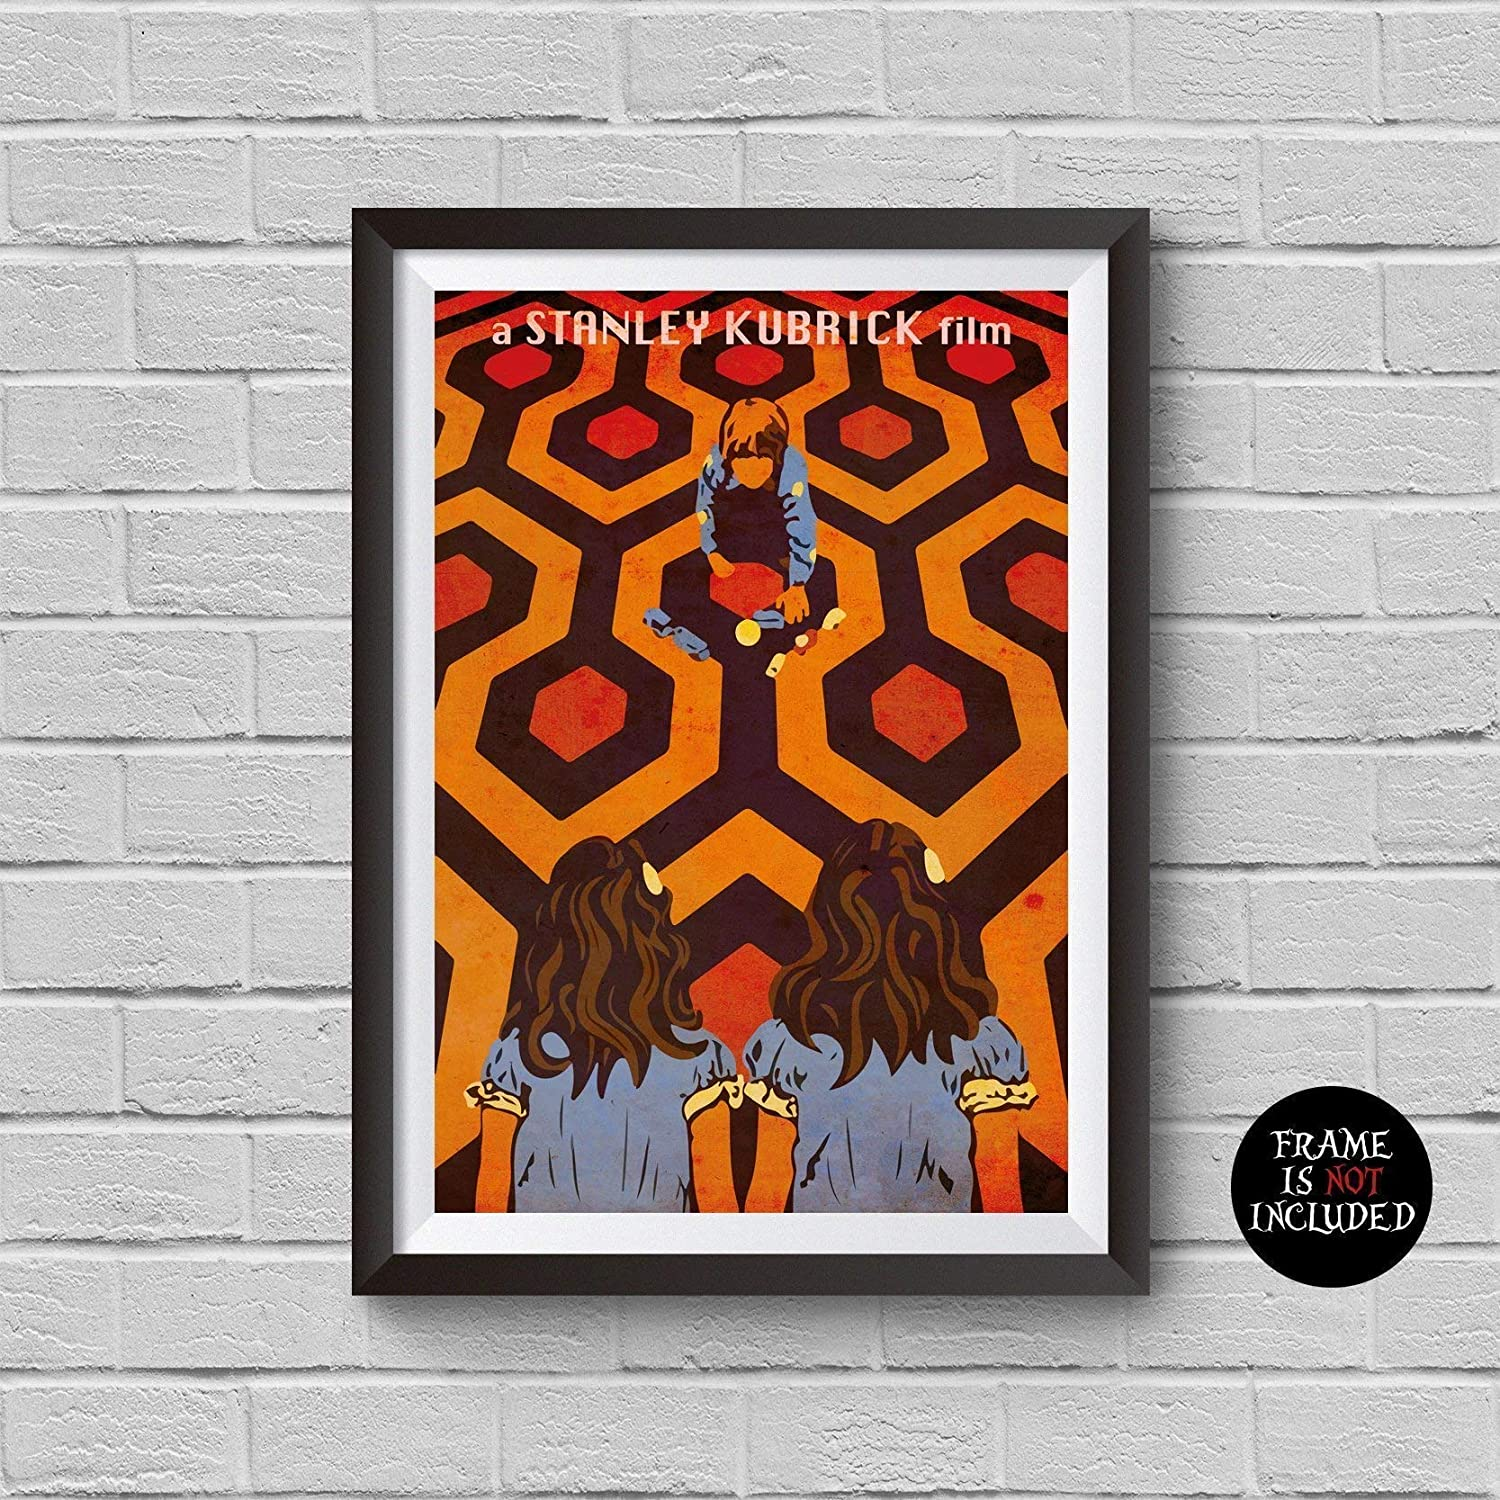 The Shining Alternative Minimalist Poster Stanley Kubrick Movie Print inspired Stephen King (novel) Jack Nicholson Illustration Home Decor Artwork Wall Art Hanging Gift Idea